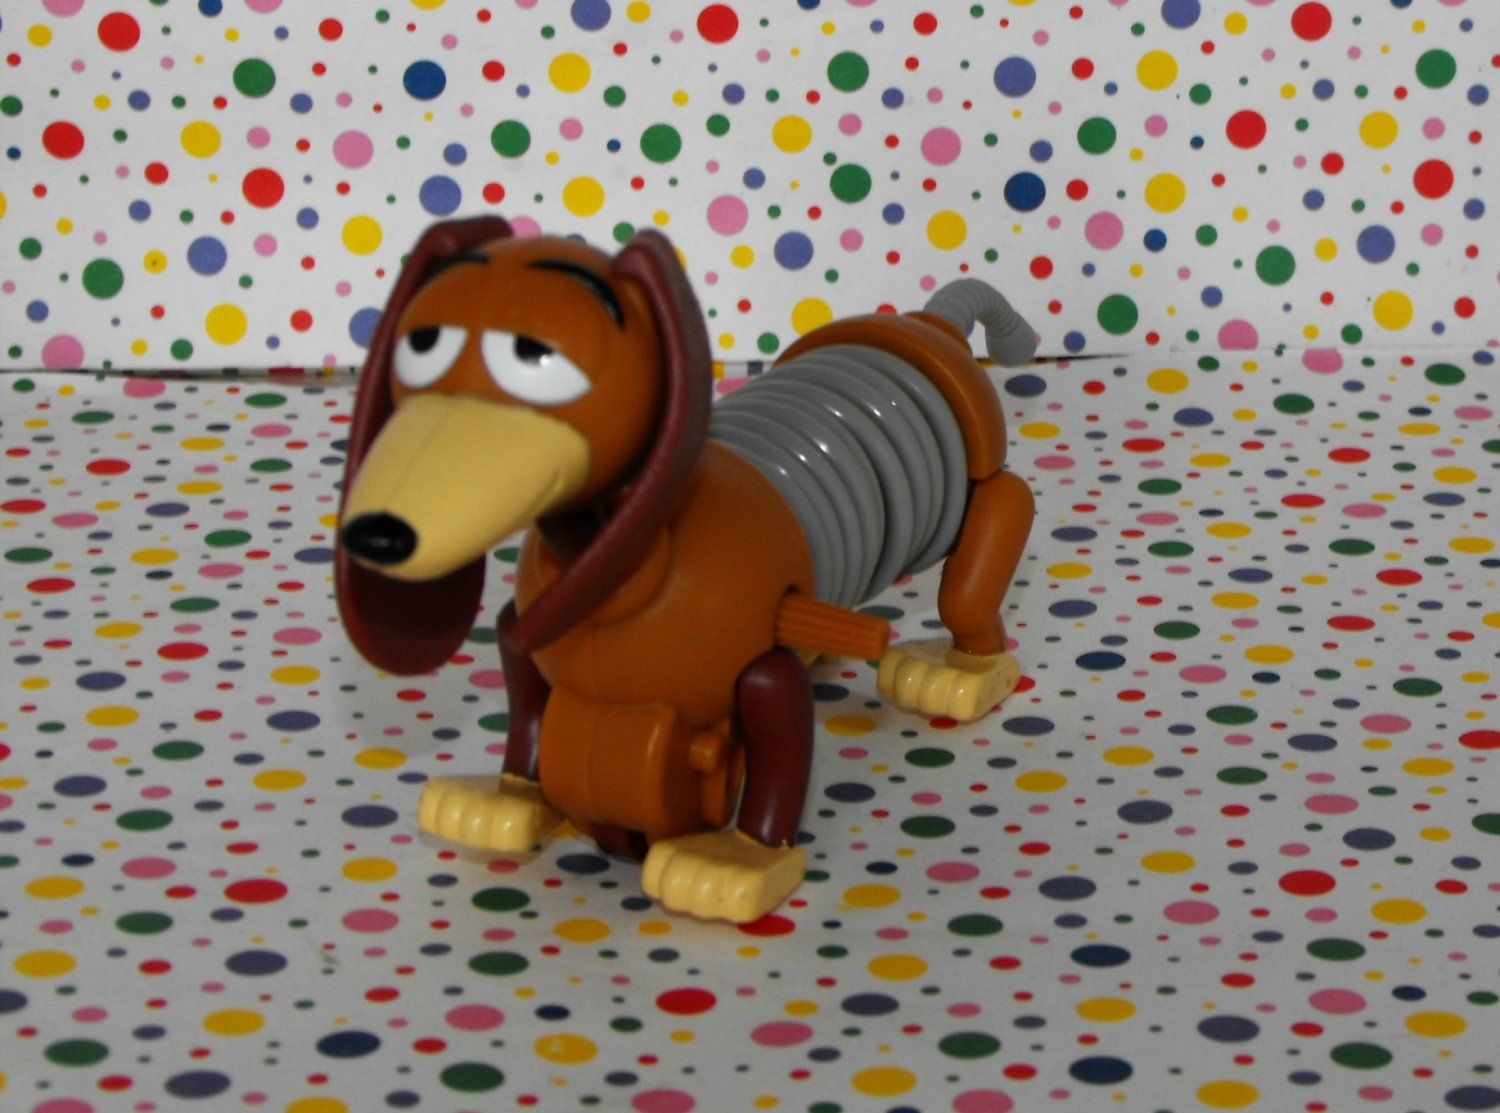 1996 Burger King Toy Story Slinky Dog Figure Another One Of My